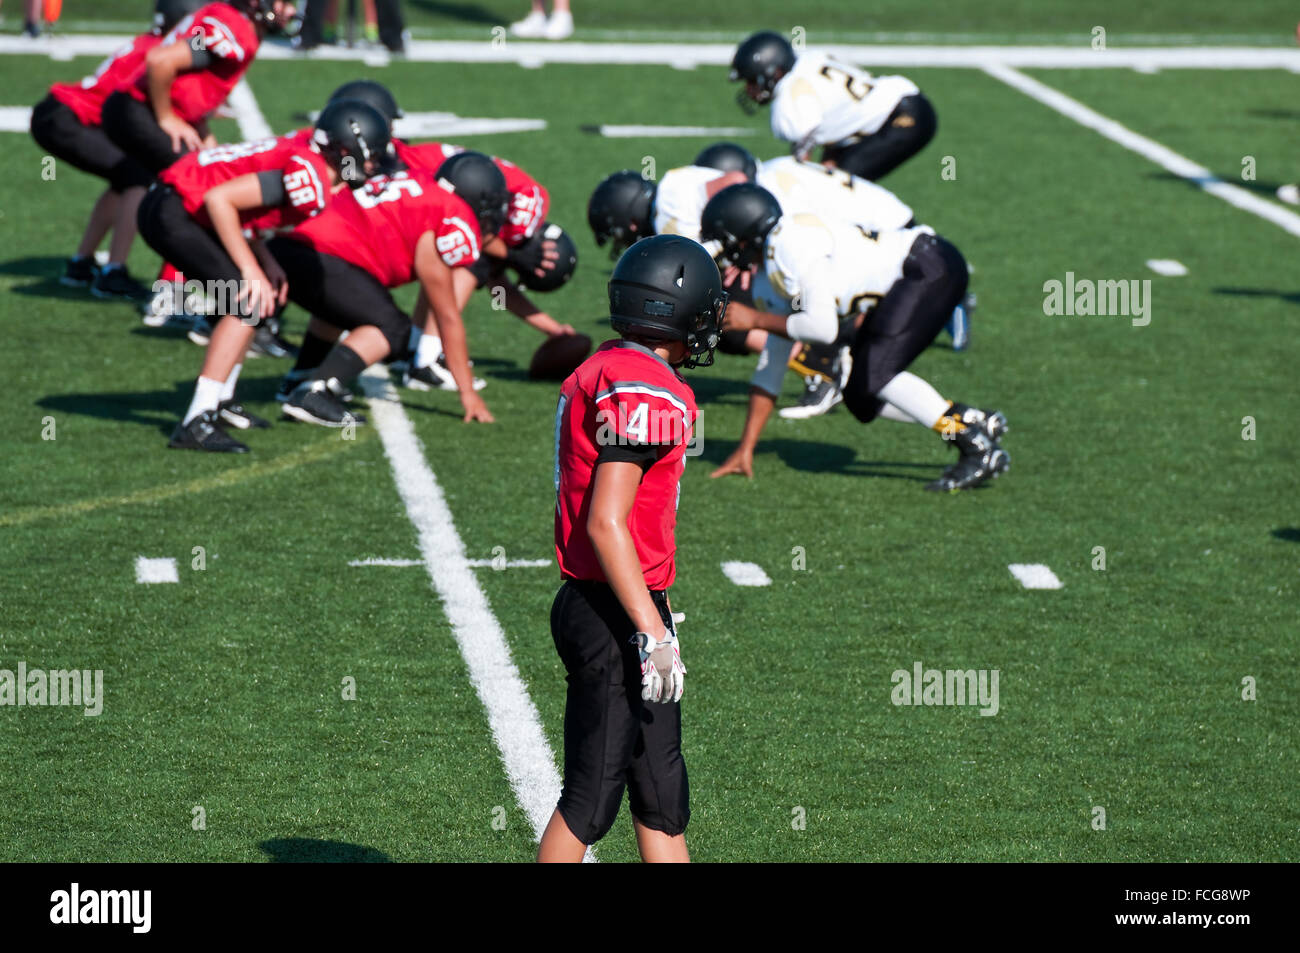 High School American football receiver waiting for play to start during the game. - Stock Image